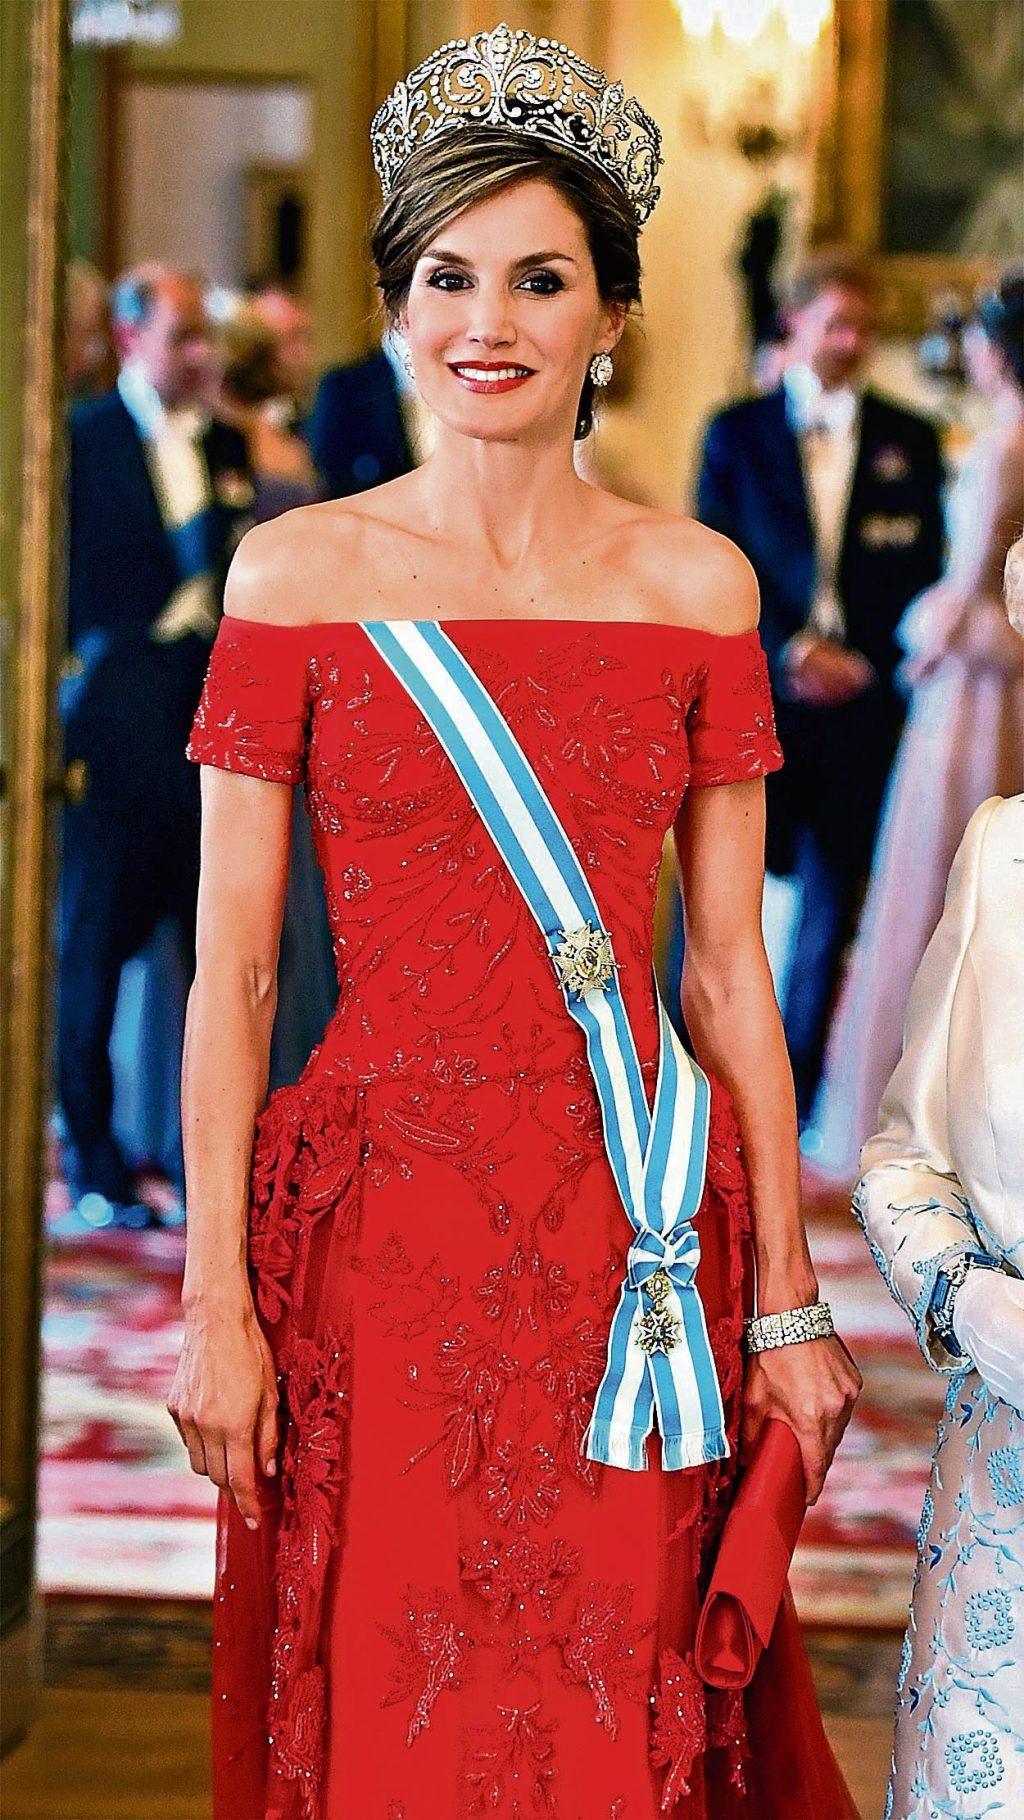 #WCW: Celebrating the Life and Style of Queen Letizia of Spain